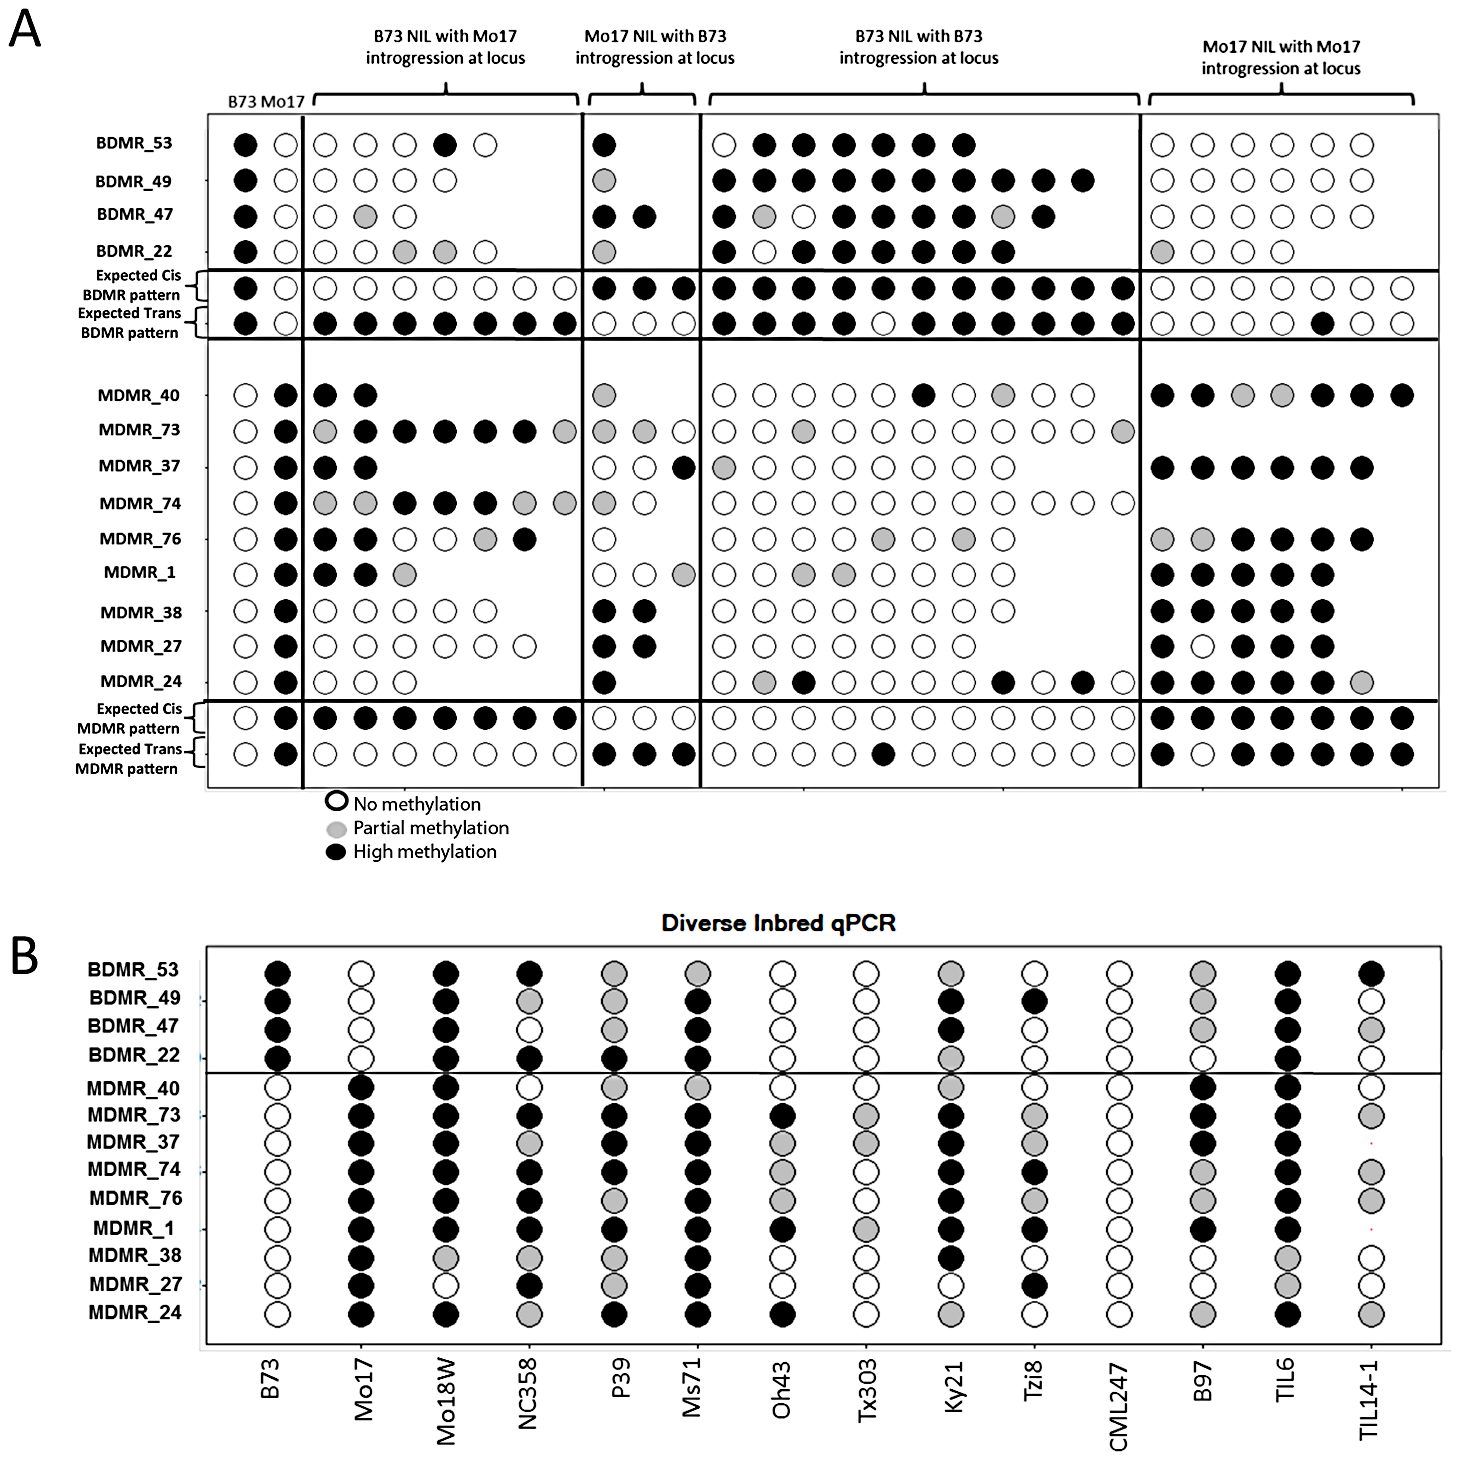 Variable DNA methylation patterns in near-isogenic lines and diverse inbreds.